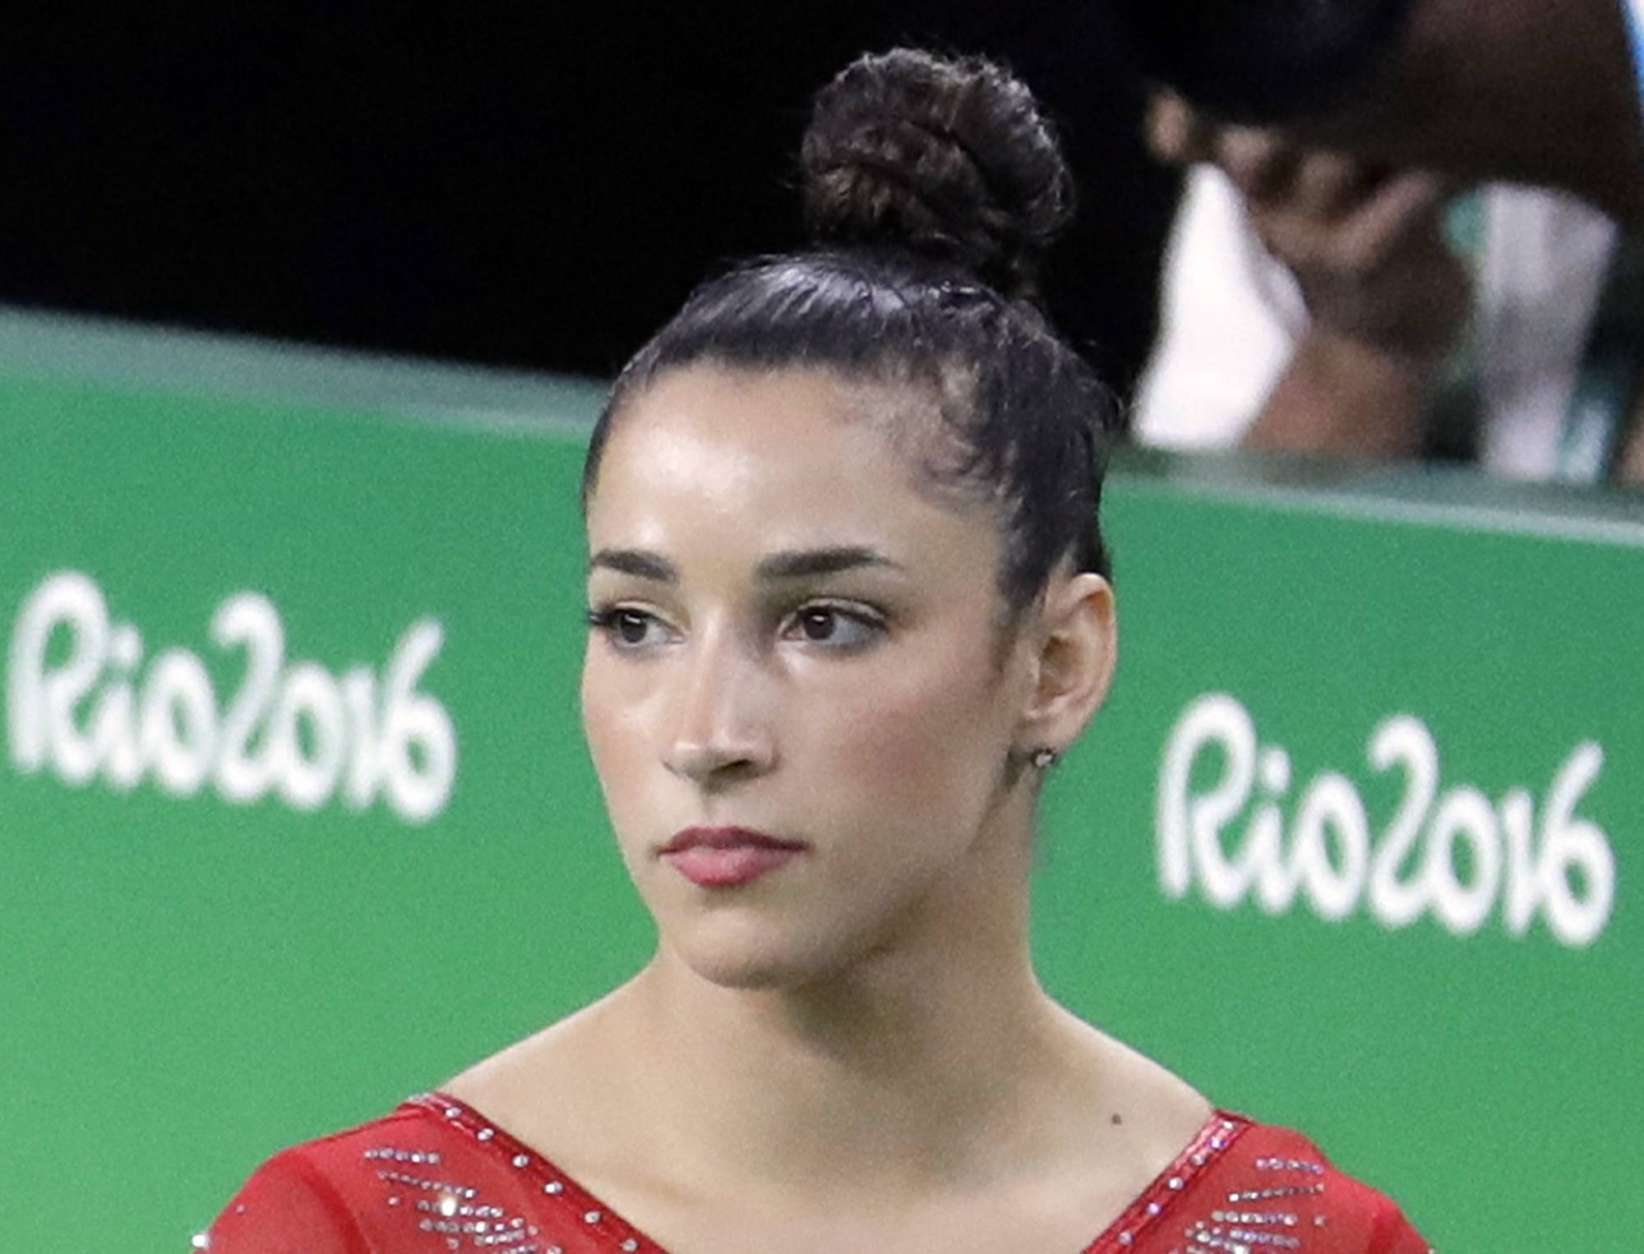 """FILE - In this Aug. 11, 2016, file photo, United States' Aly Raisman rests between apparatus' during the artistic gymnastics women's individual all-around final at the 2016 Summer Olympics in Rio de Janeiro, Brazil. Raisman says she is among the young women abused by a former USA Gymnastics team doctor. Raisman tells """"60 Minutes"""" she was 15 when she was first treated by Dr. Larry Nassar, who spent more than two decades working with athletes at USA Gymnastics. He's now is in jail in Michigan awaiting sentencing after pleading guilty to possession of child pornography. (AP Photo/Julio Cortez, File)"""